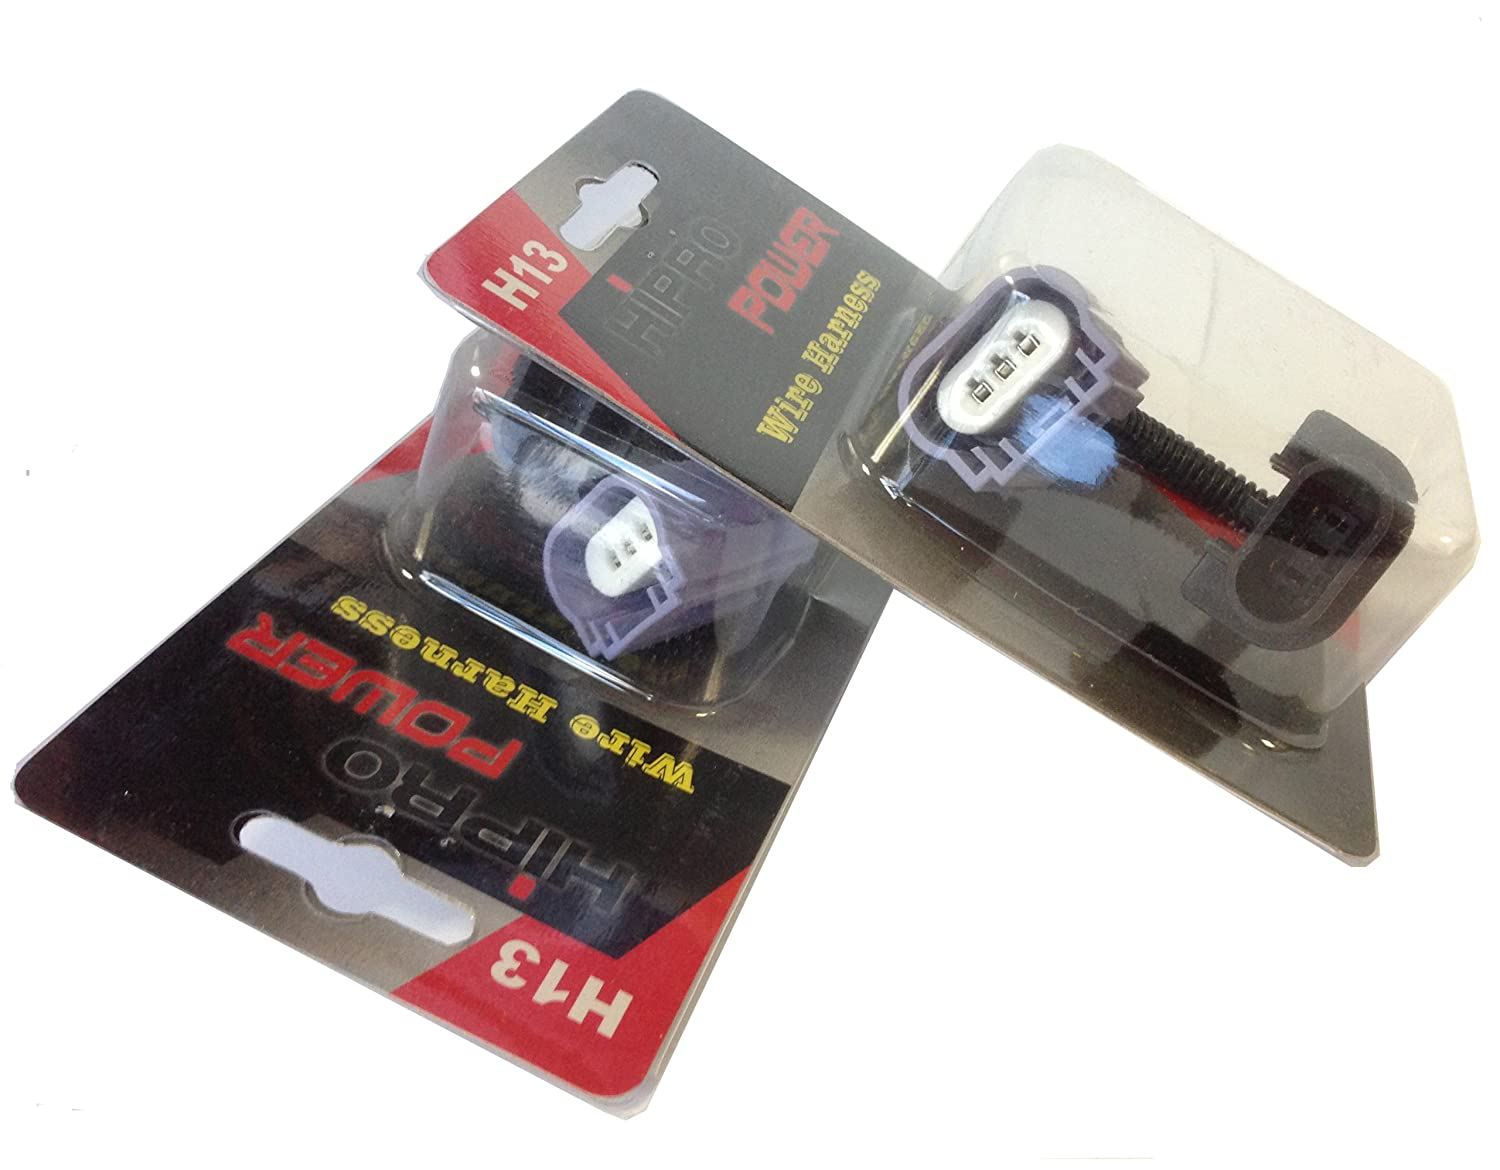 H13 Wiring Harness Library D2r Hid Headlights Wire Diagram Amazoncom Hipro Power 9008 Heavy Duty Headlight